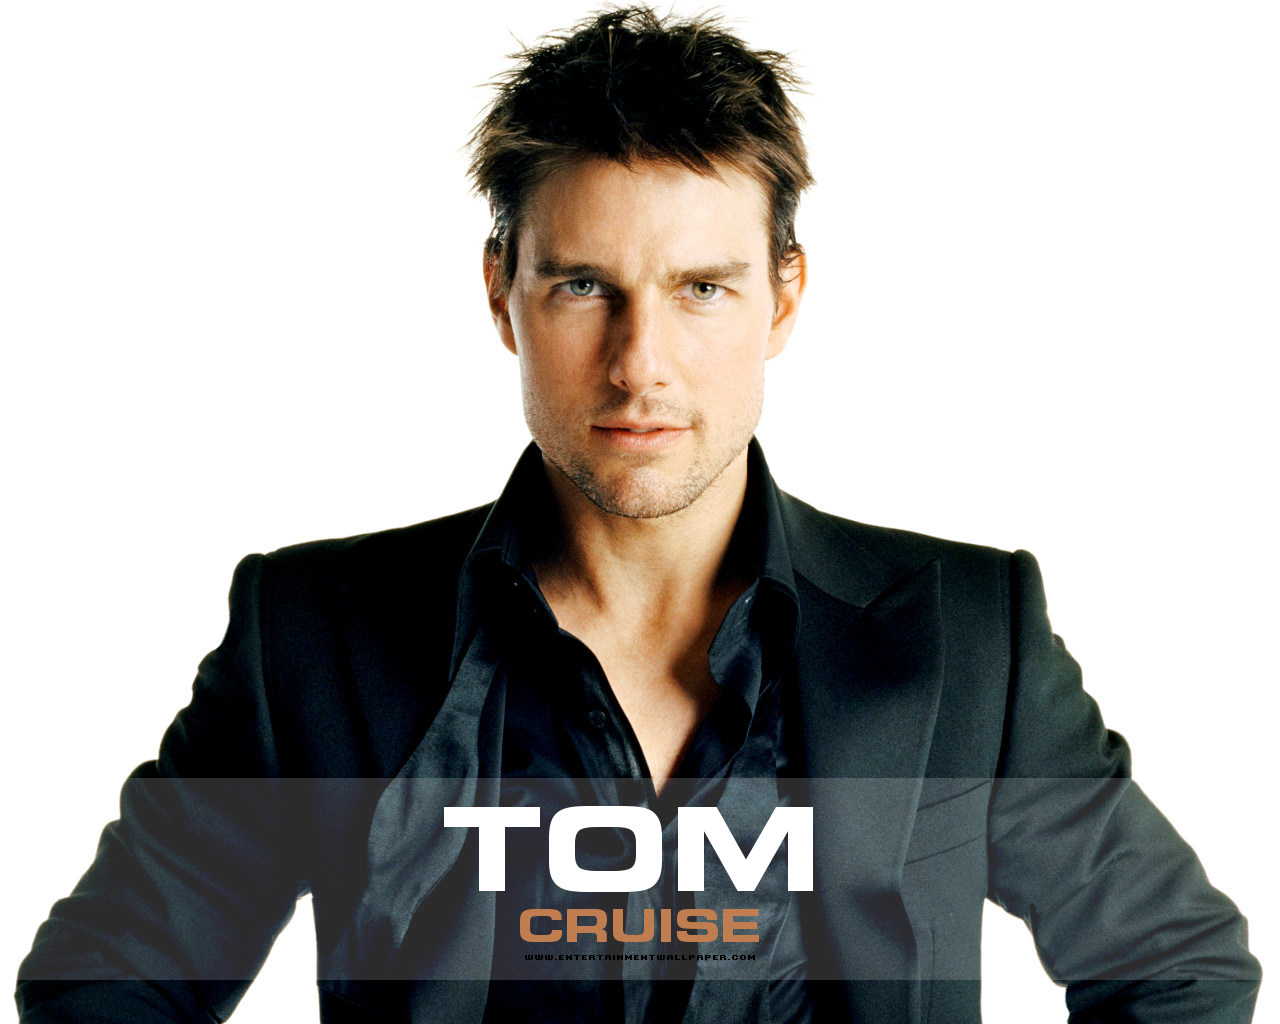 http://1.bp.blogspot.com/-C6D9oDHmtHw/To2Bi8ZkrxI/AAAAAAAACWE/nxeXqFXId8k/s1600/Tom-Cruise-HD-Wallpapers-.jpg